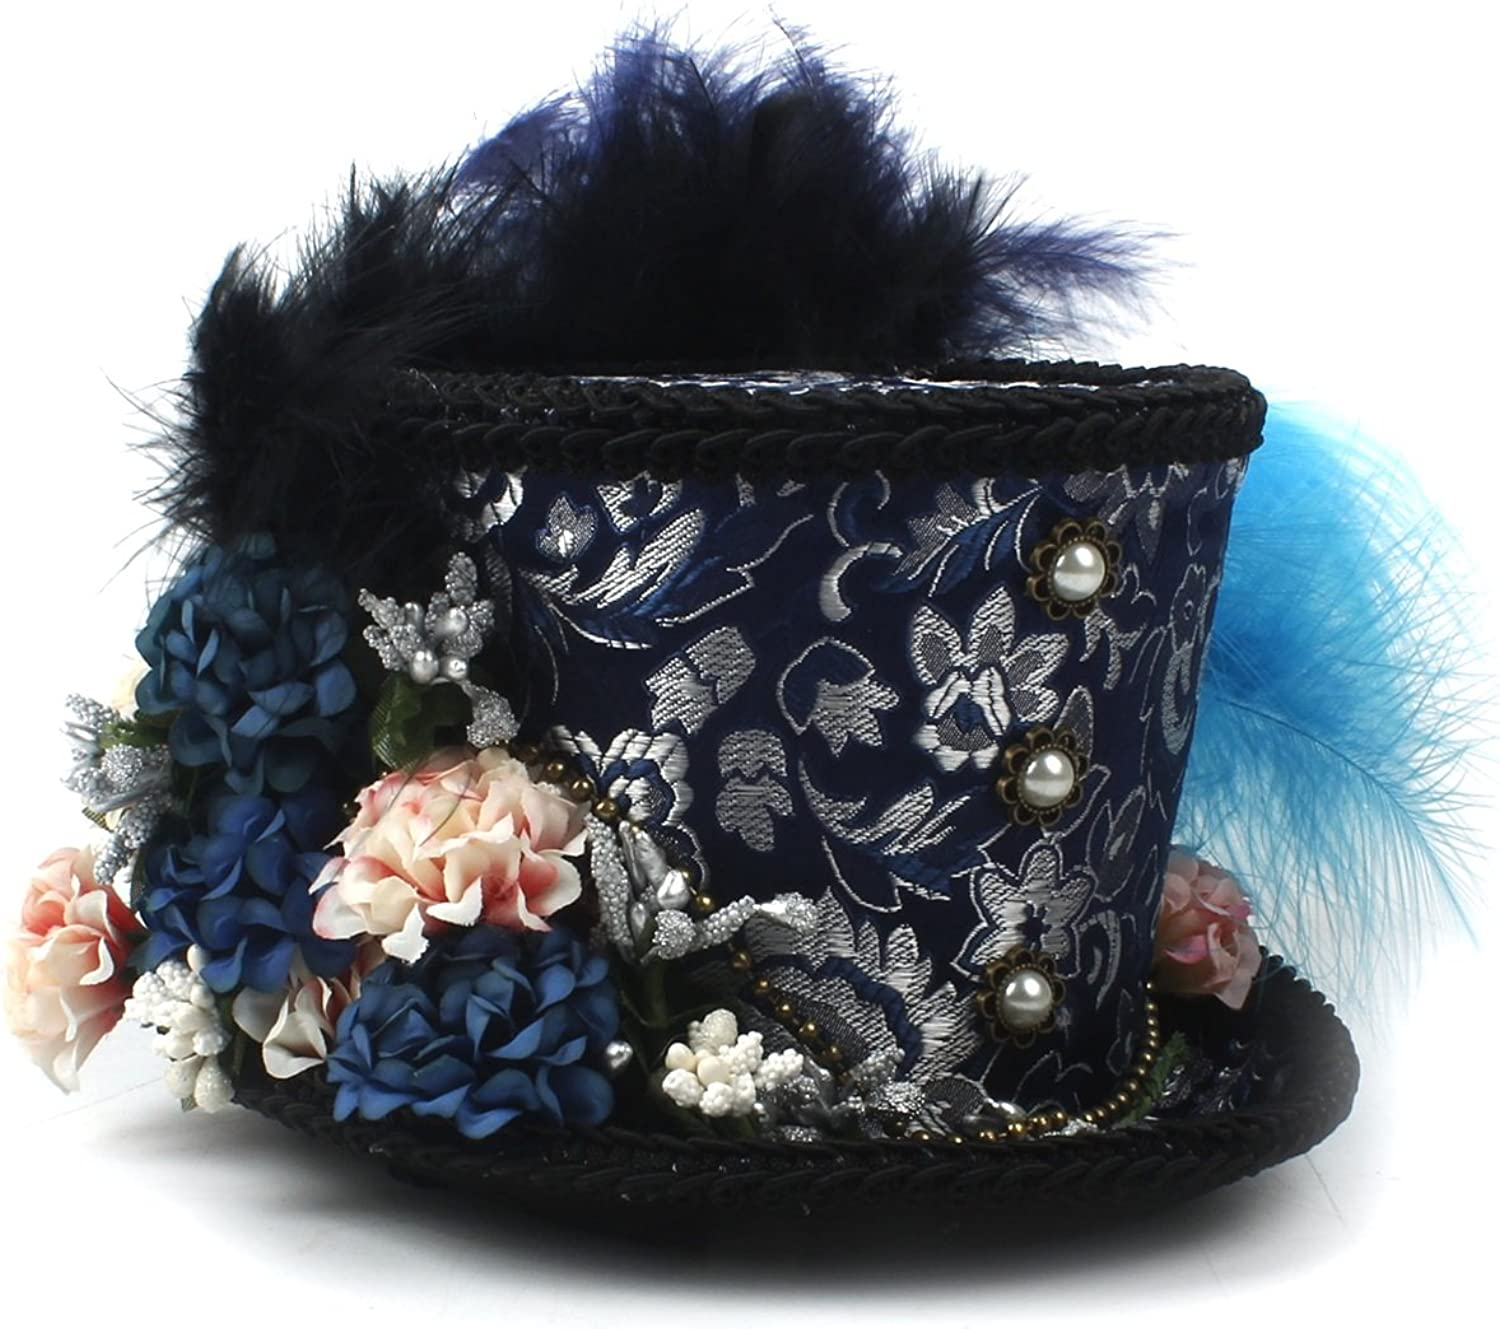 Brand New Mini Top Hat, Turquoise Royal Ascot, Horse Race hat, Paisley Tea Party hat, Mad Hatter hat